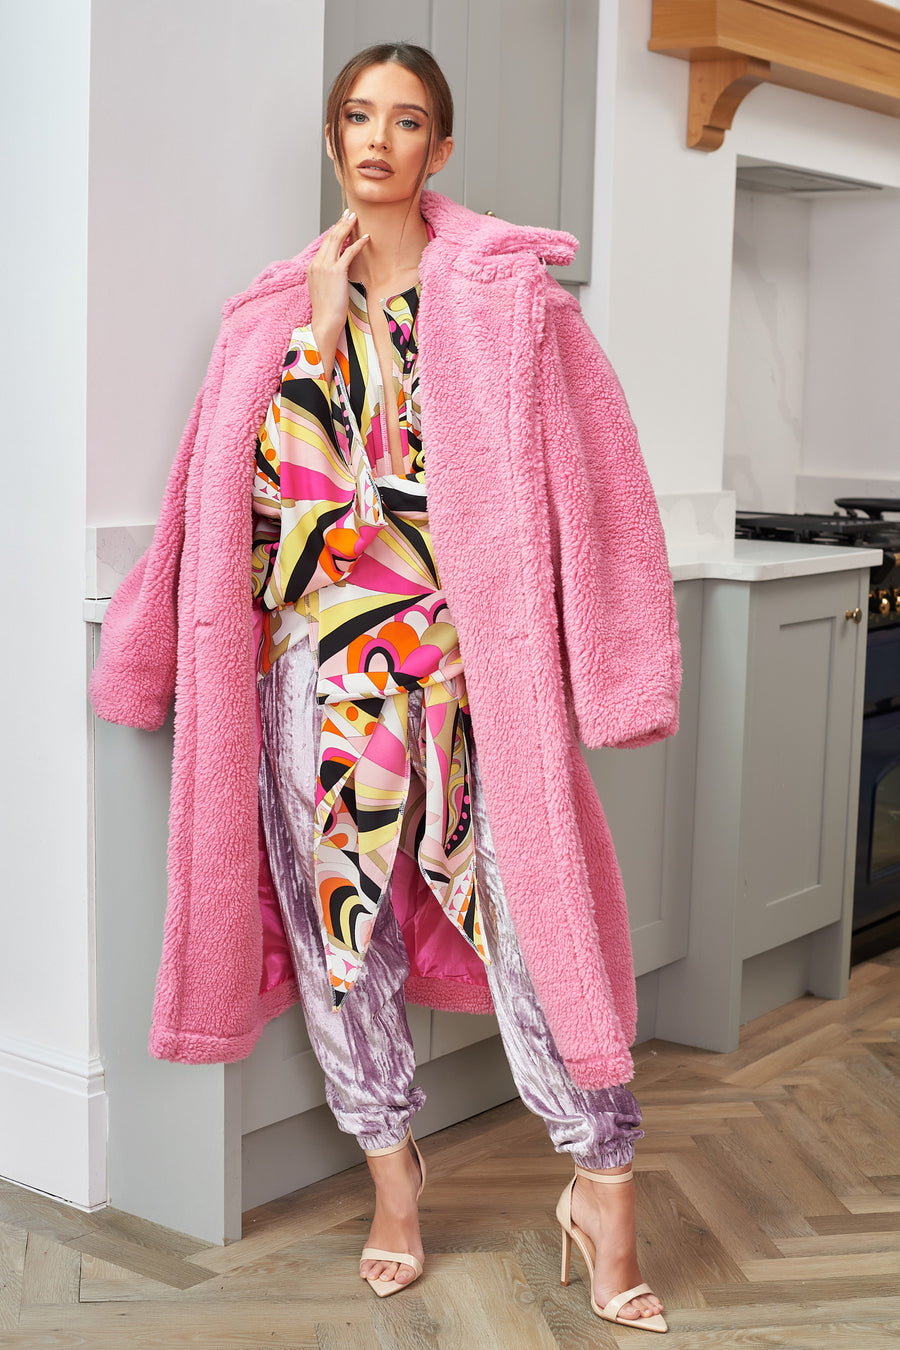 Pink Teddy Bear Coat